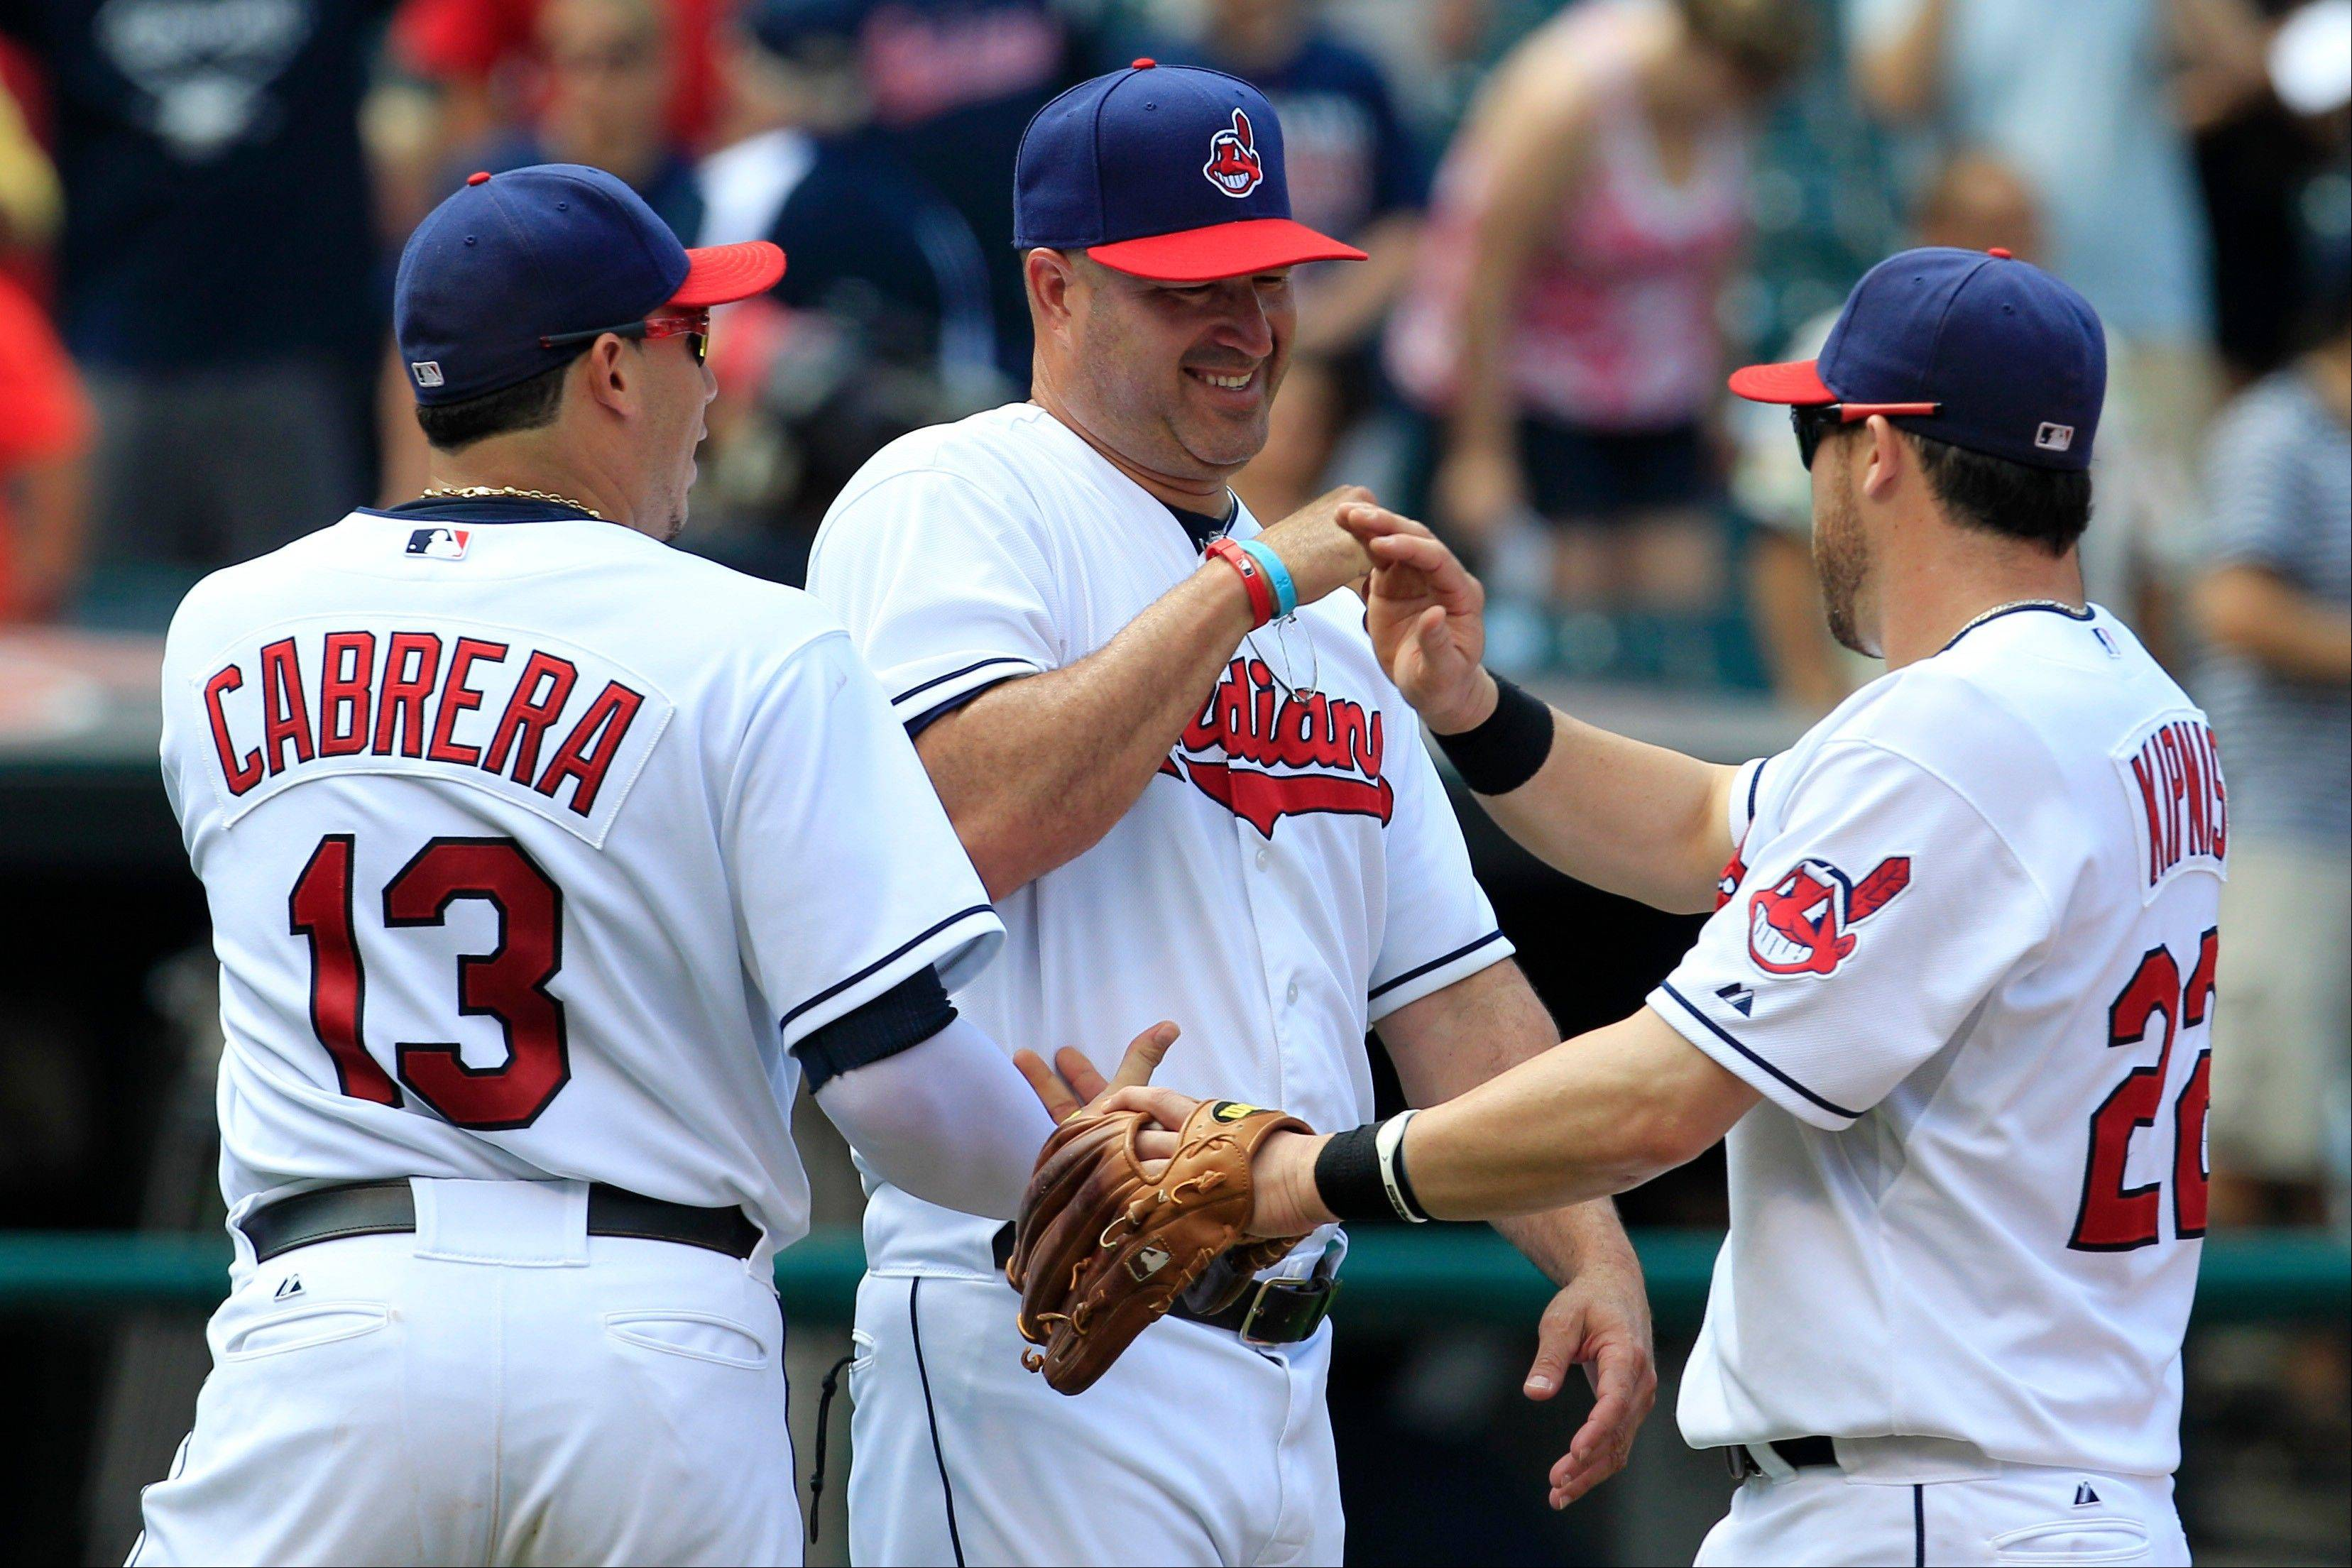 Cleveland Indians manager Manny Acta, center, smiles as he congratulates Asdrubal Cabrera, left, and Jason Kipnis Wednesday after the Indians defeated the Minnesota Twins 6-2 in Cleveland.